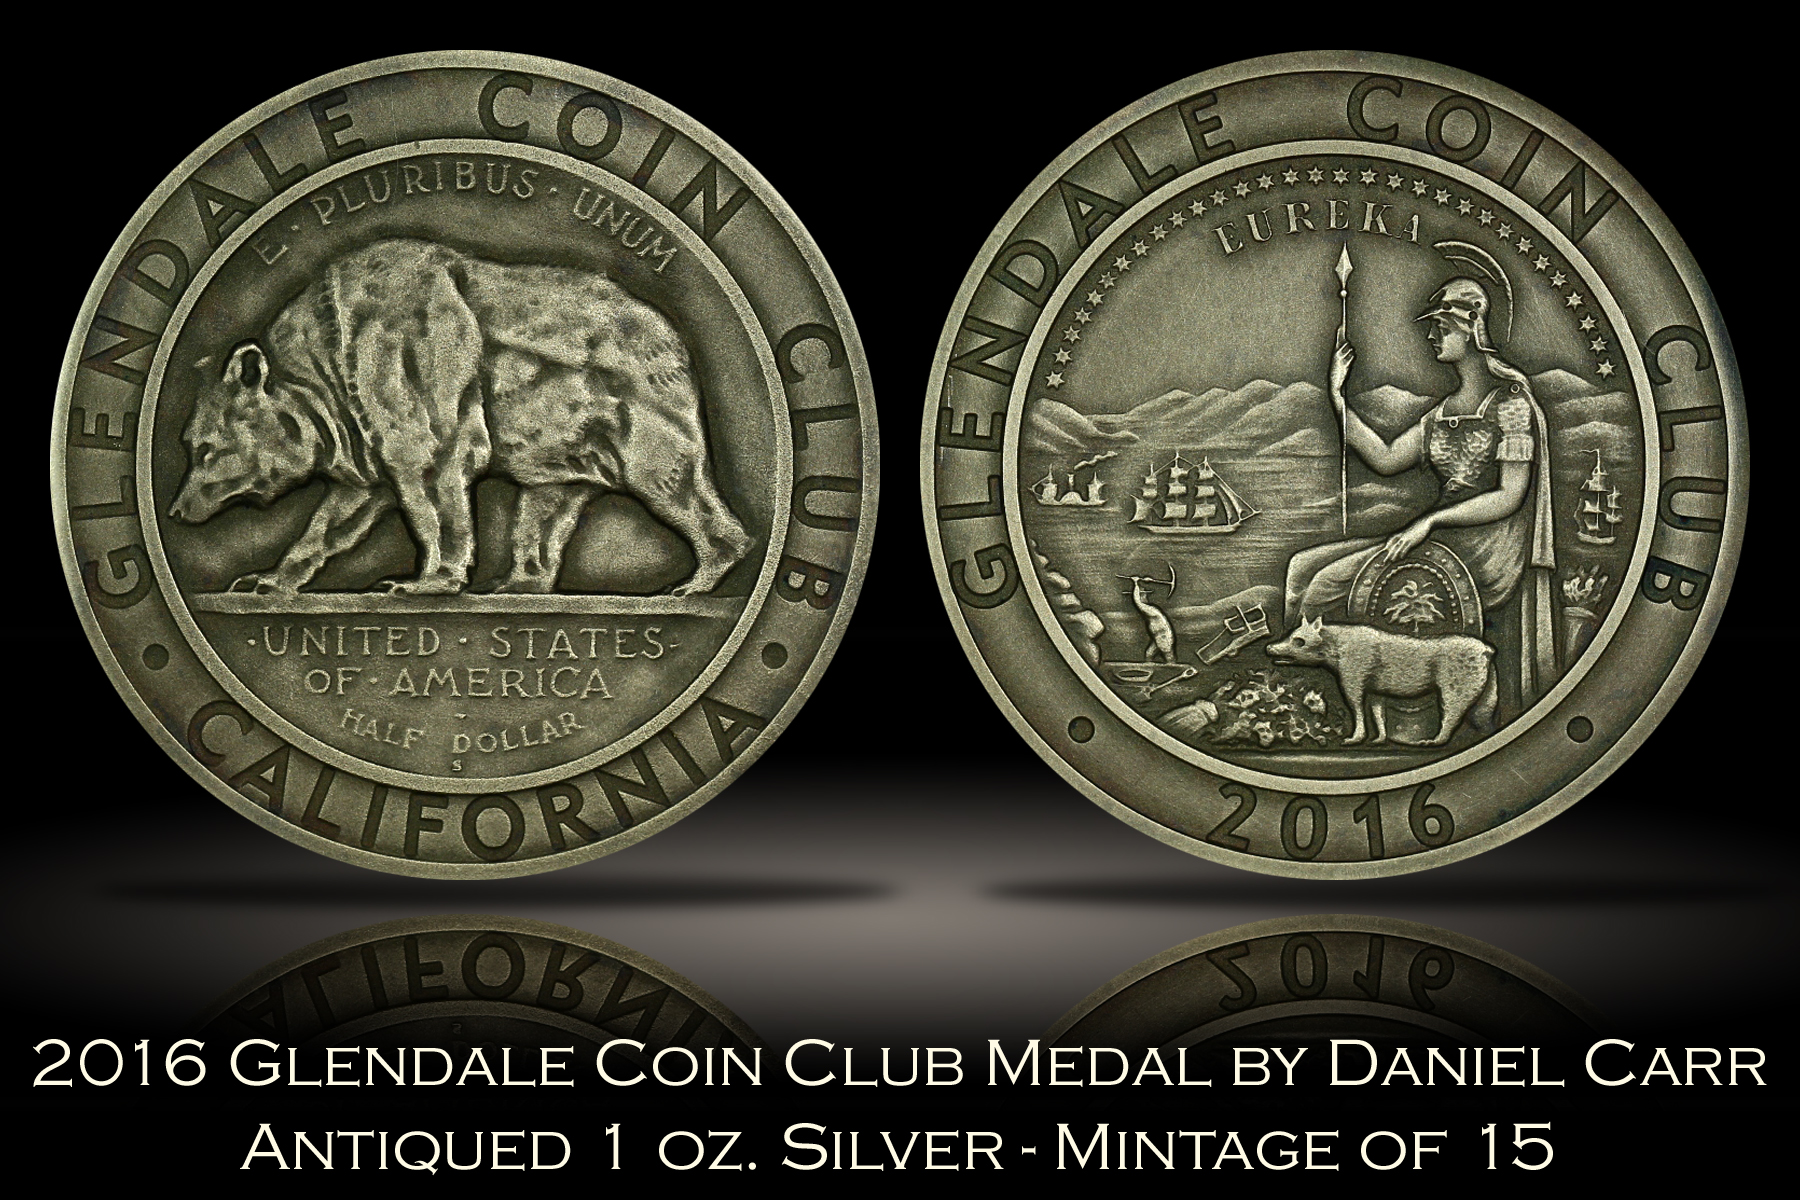 2016 Glendale Coin Club Antique Silver Medal by Daniel Carr